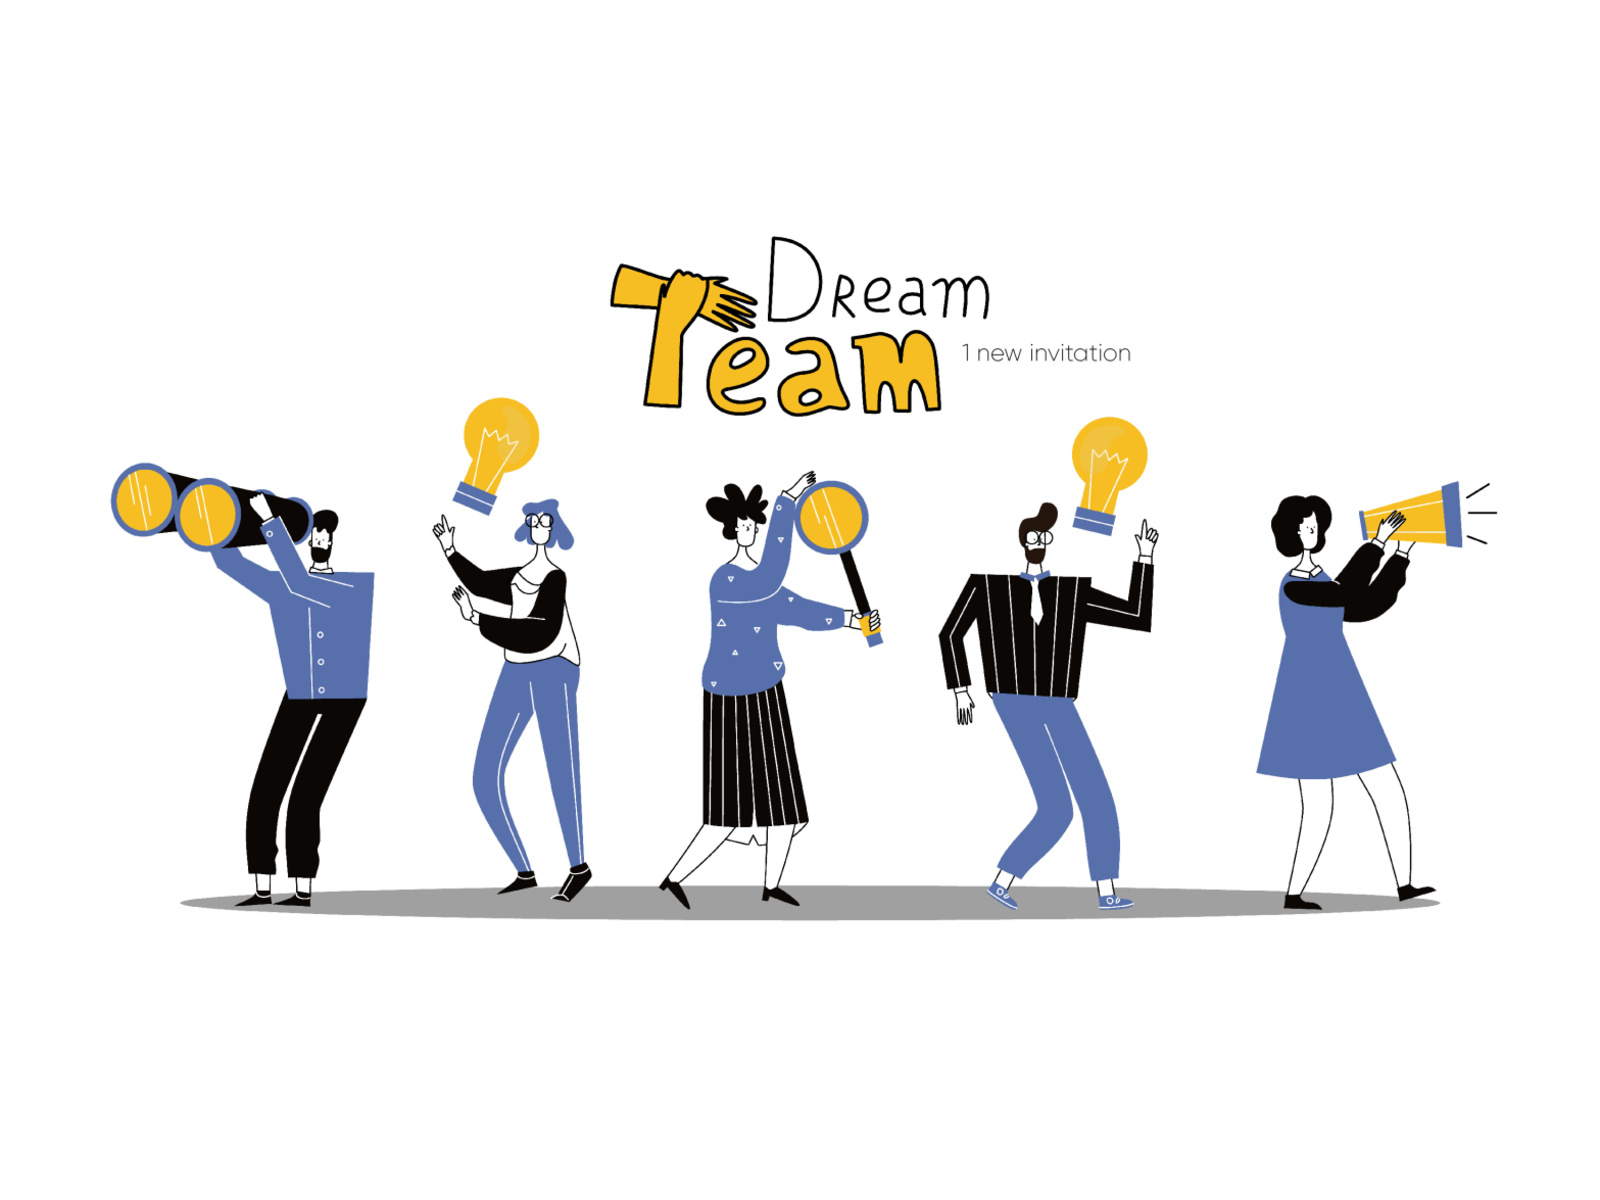 image library Illustration dream team work. Vector business success